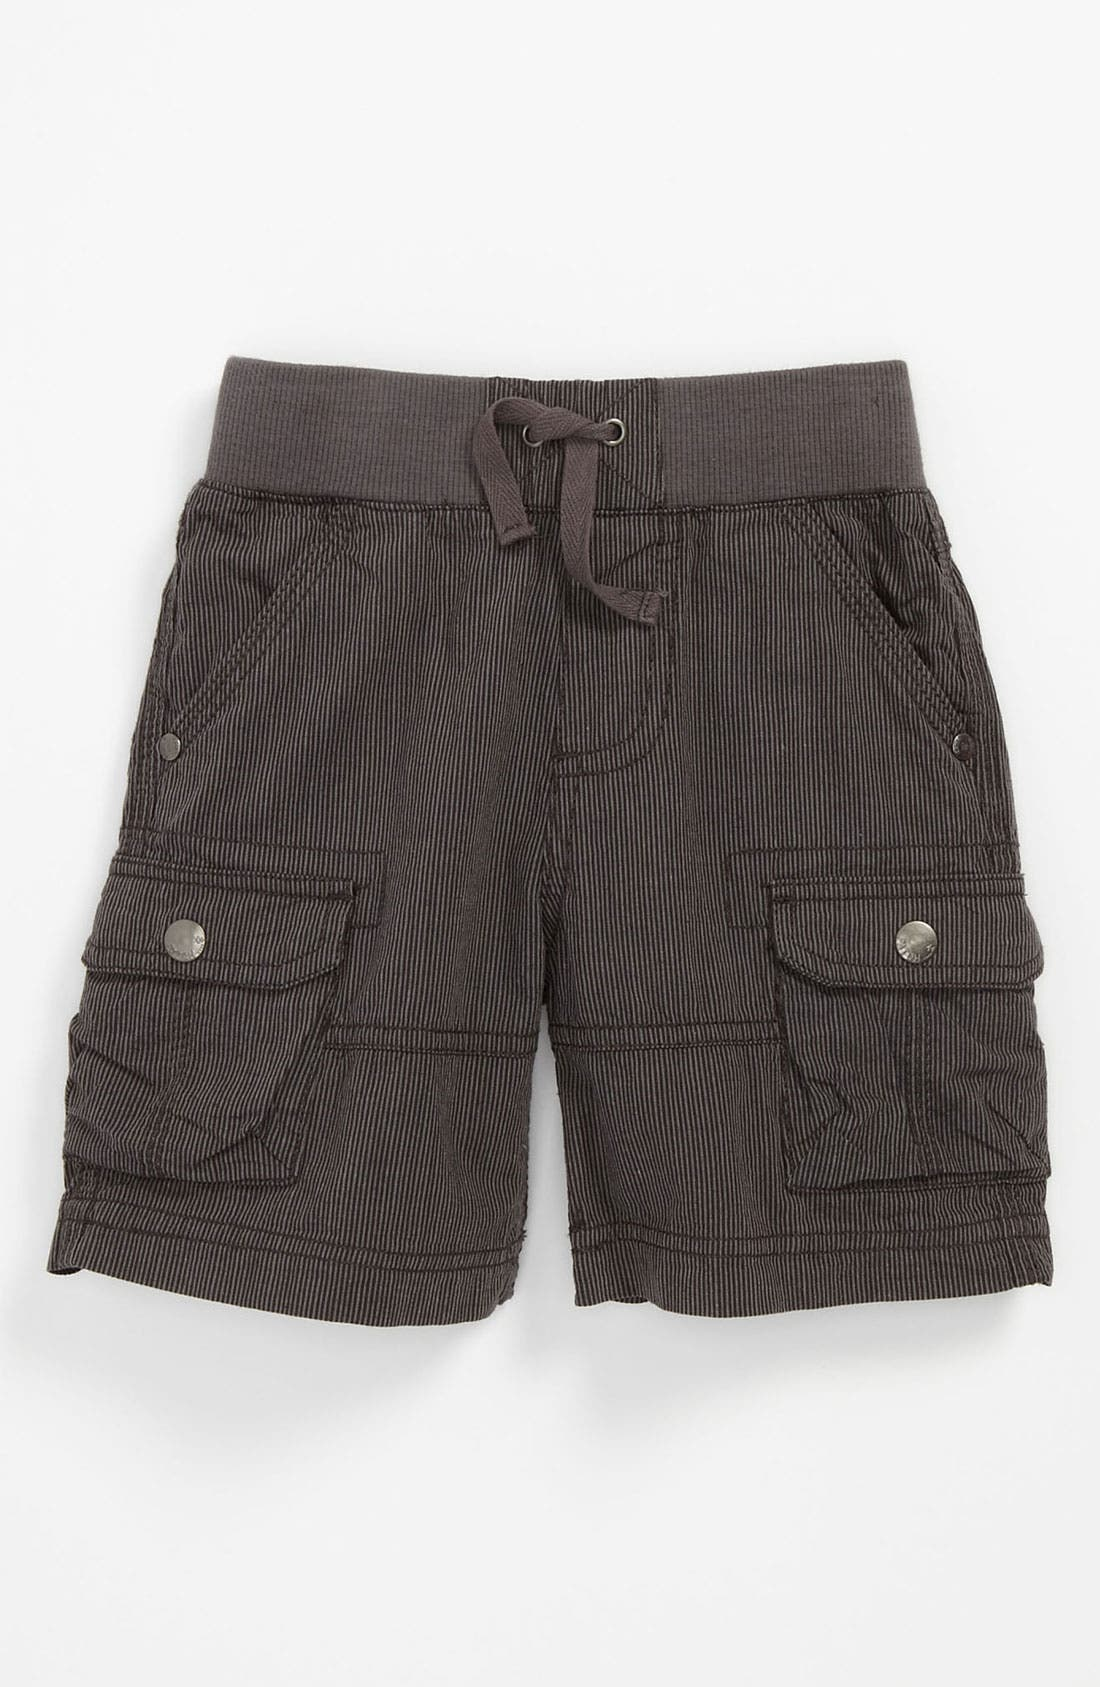 Alternate Image 1 Selected - Pumpkin Patch Pinstripe Cargo Shorts (Toddler)